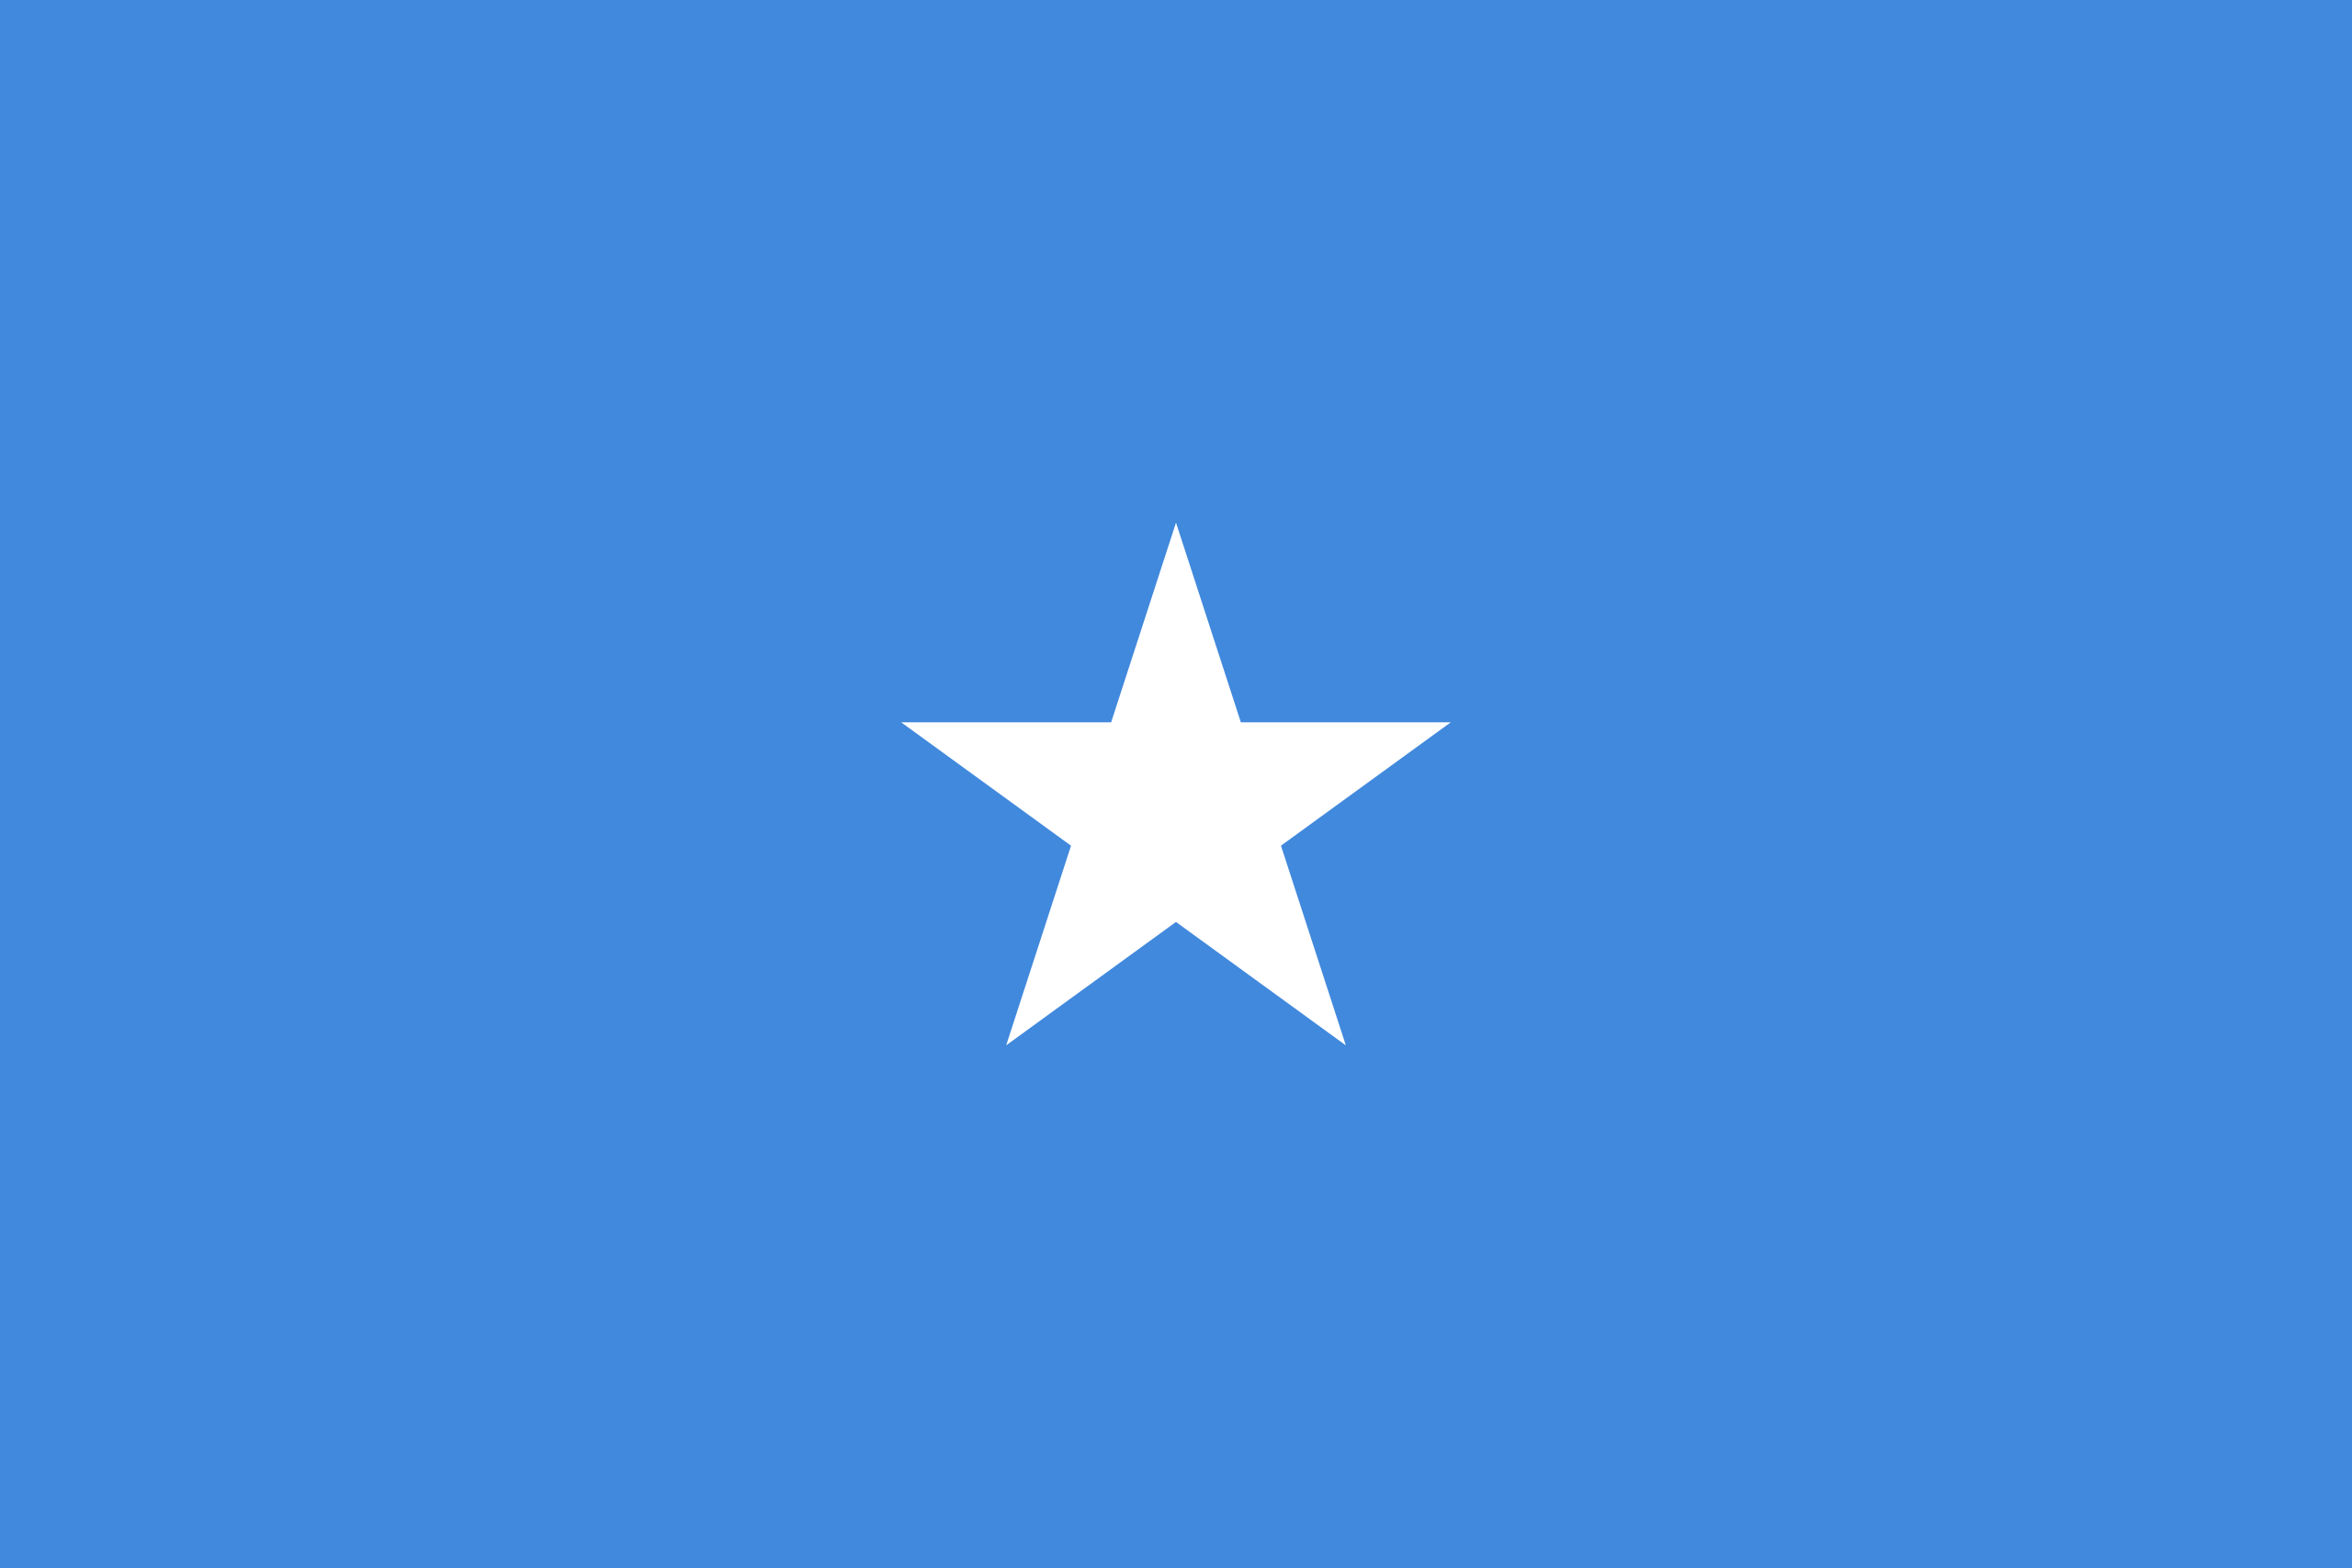 The official flag of the Somalia